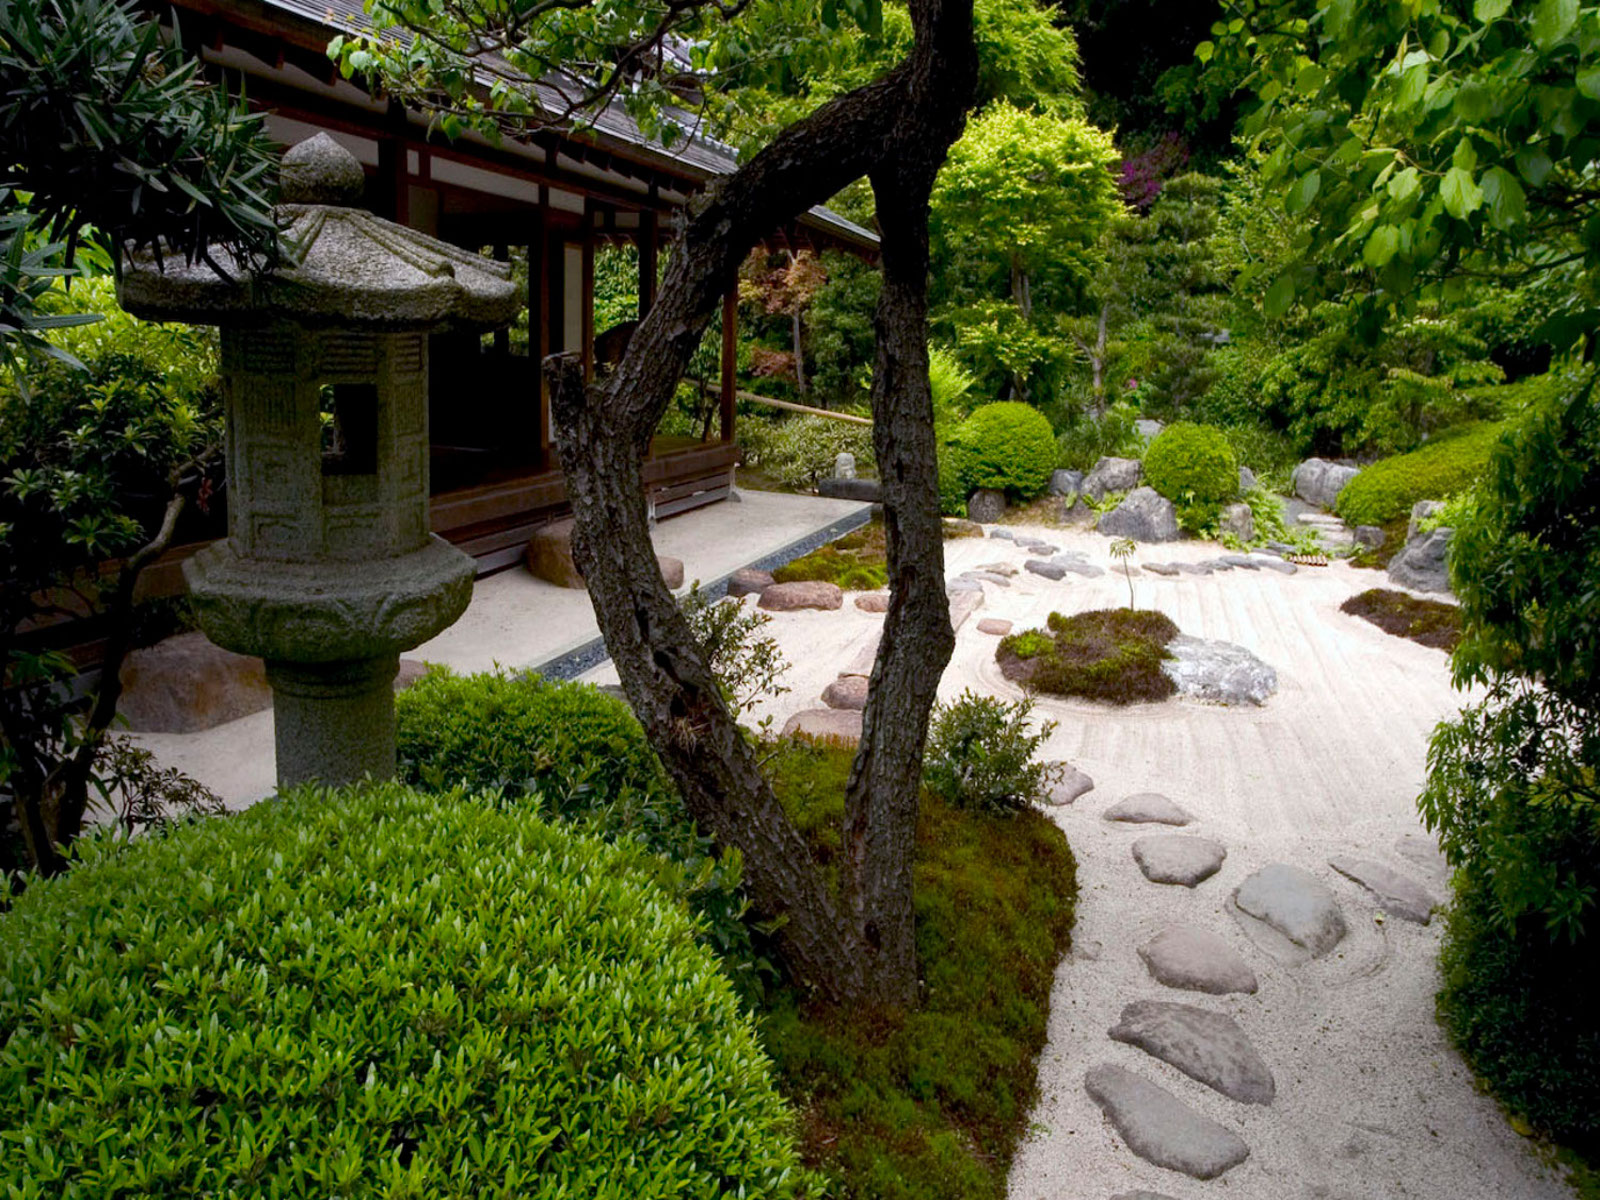 Zen garden wallpaper hd wallpaper pictures gallery for Japanese zen garden